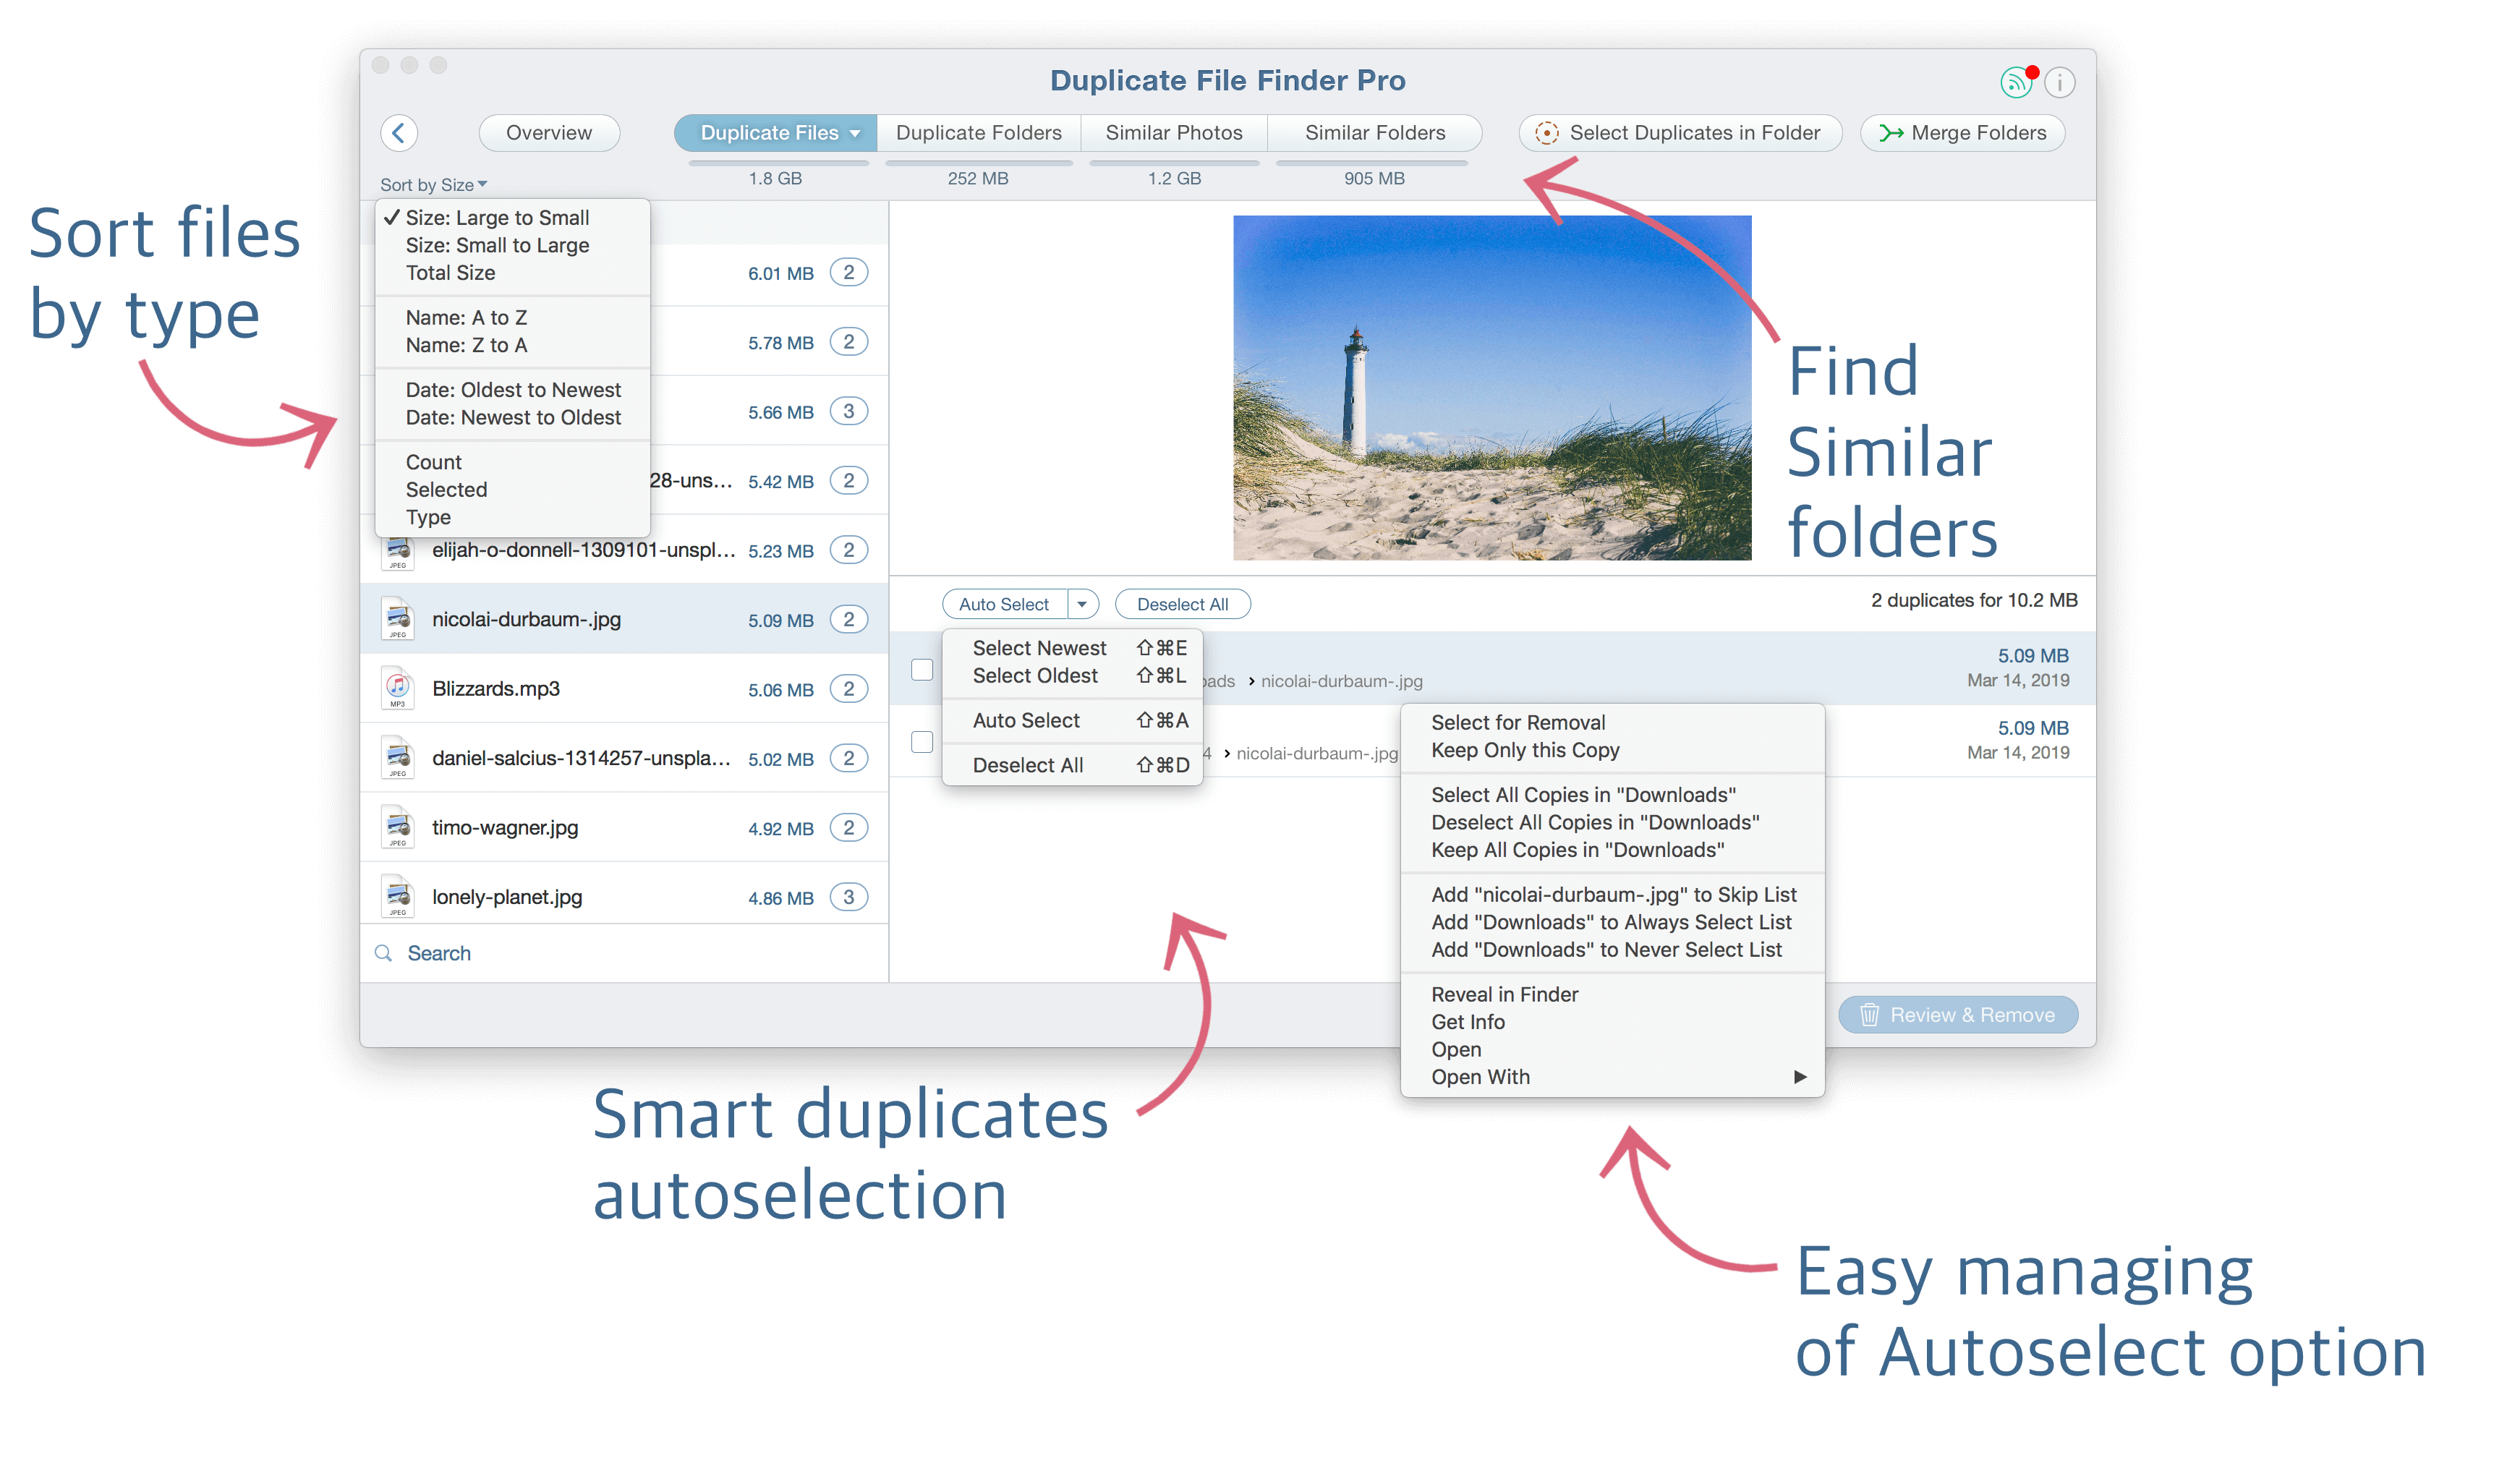 Features highlighted in Duplicate File Finder